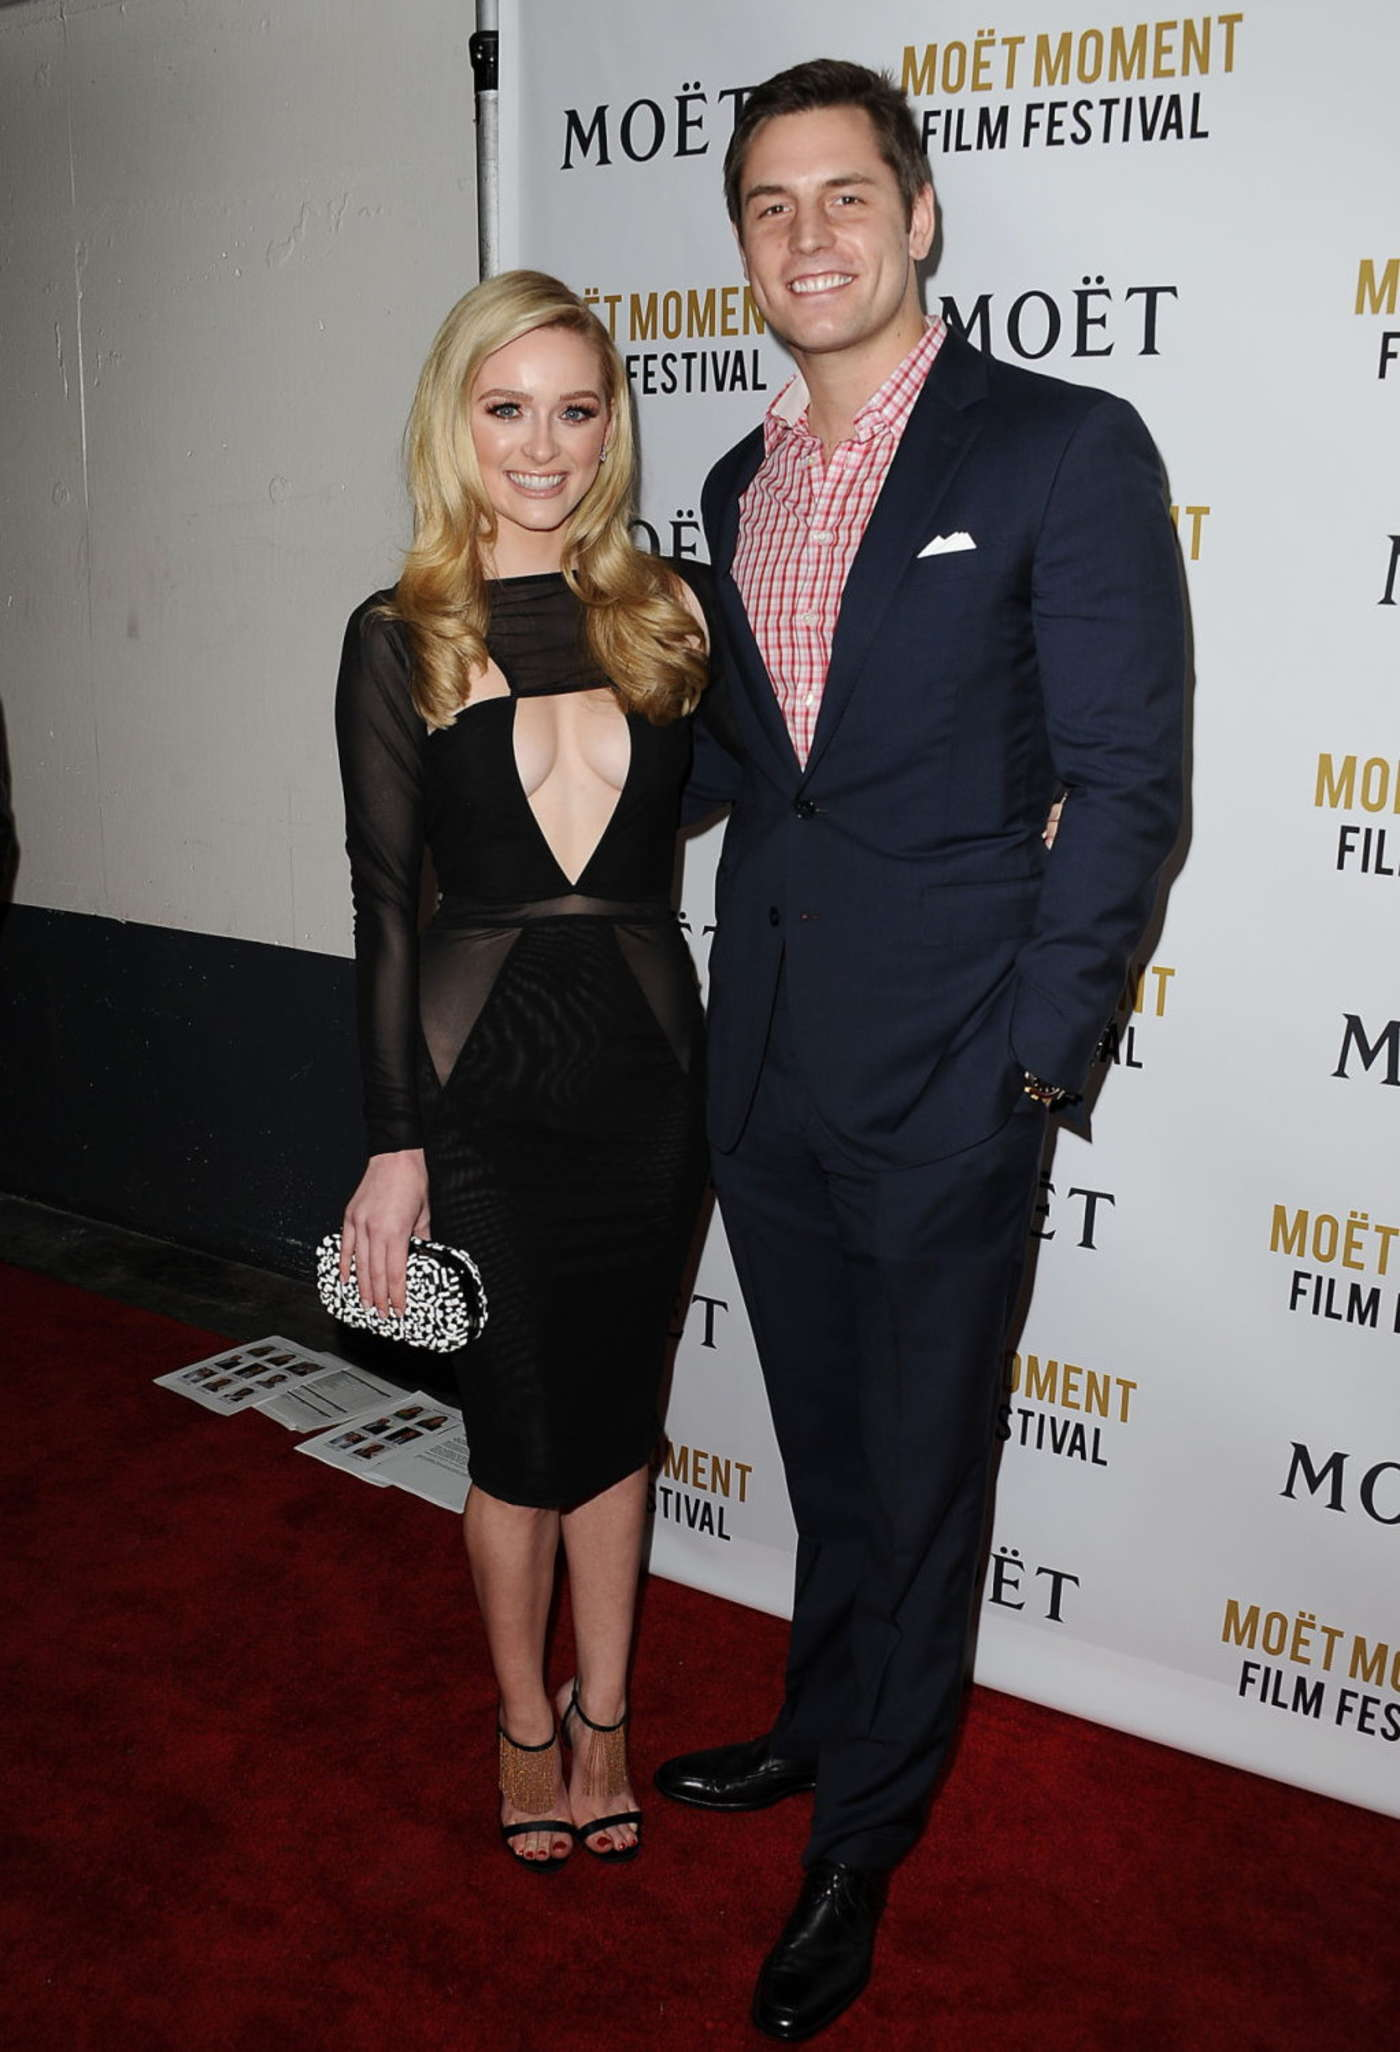 Greer Grammer 2016 : Greer Grammer: Moet And Chandon Celebrates 25 Years At The Golden Globes -07